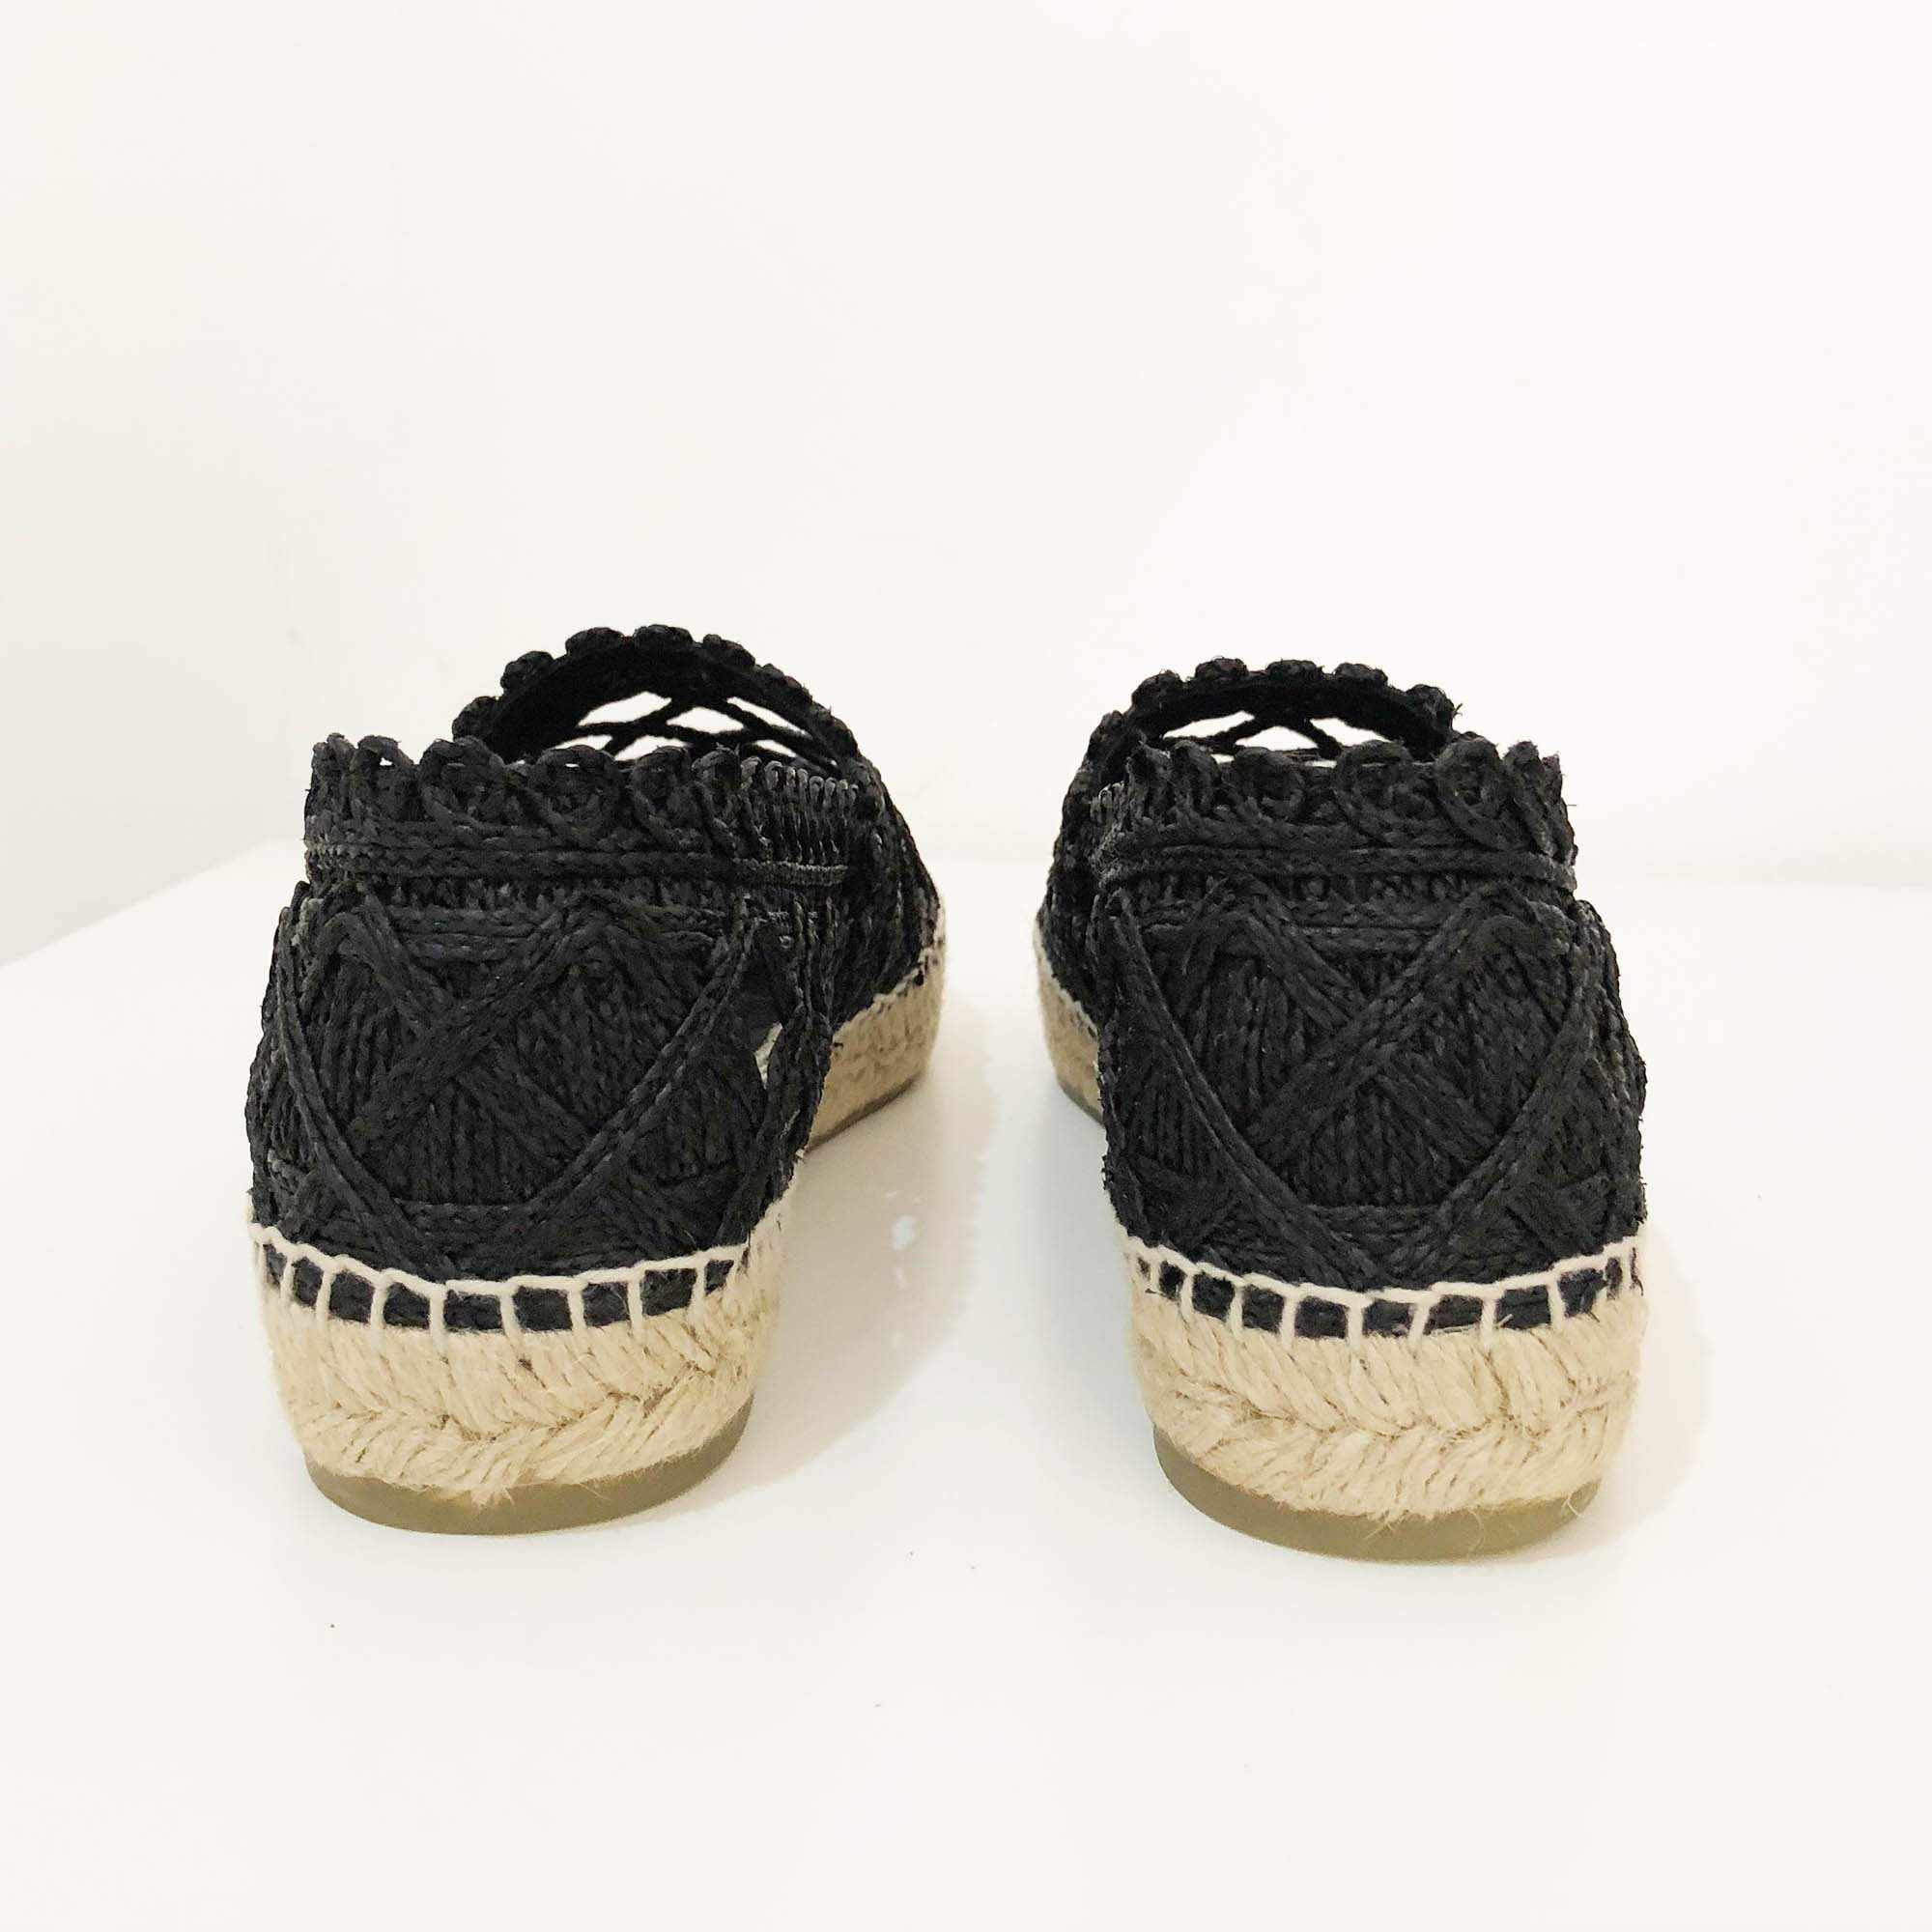 Chanel Black Grosgrain 2018 Espadrilles